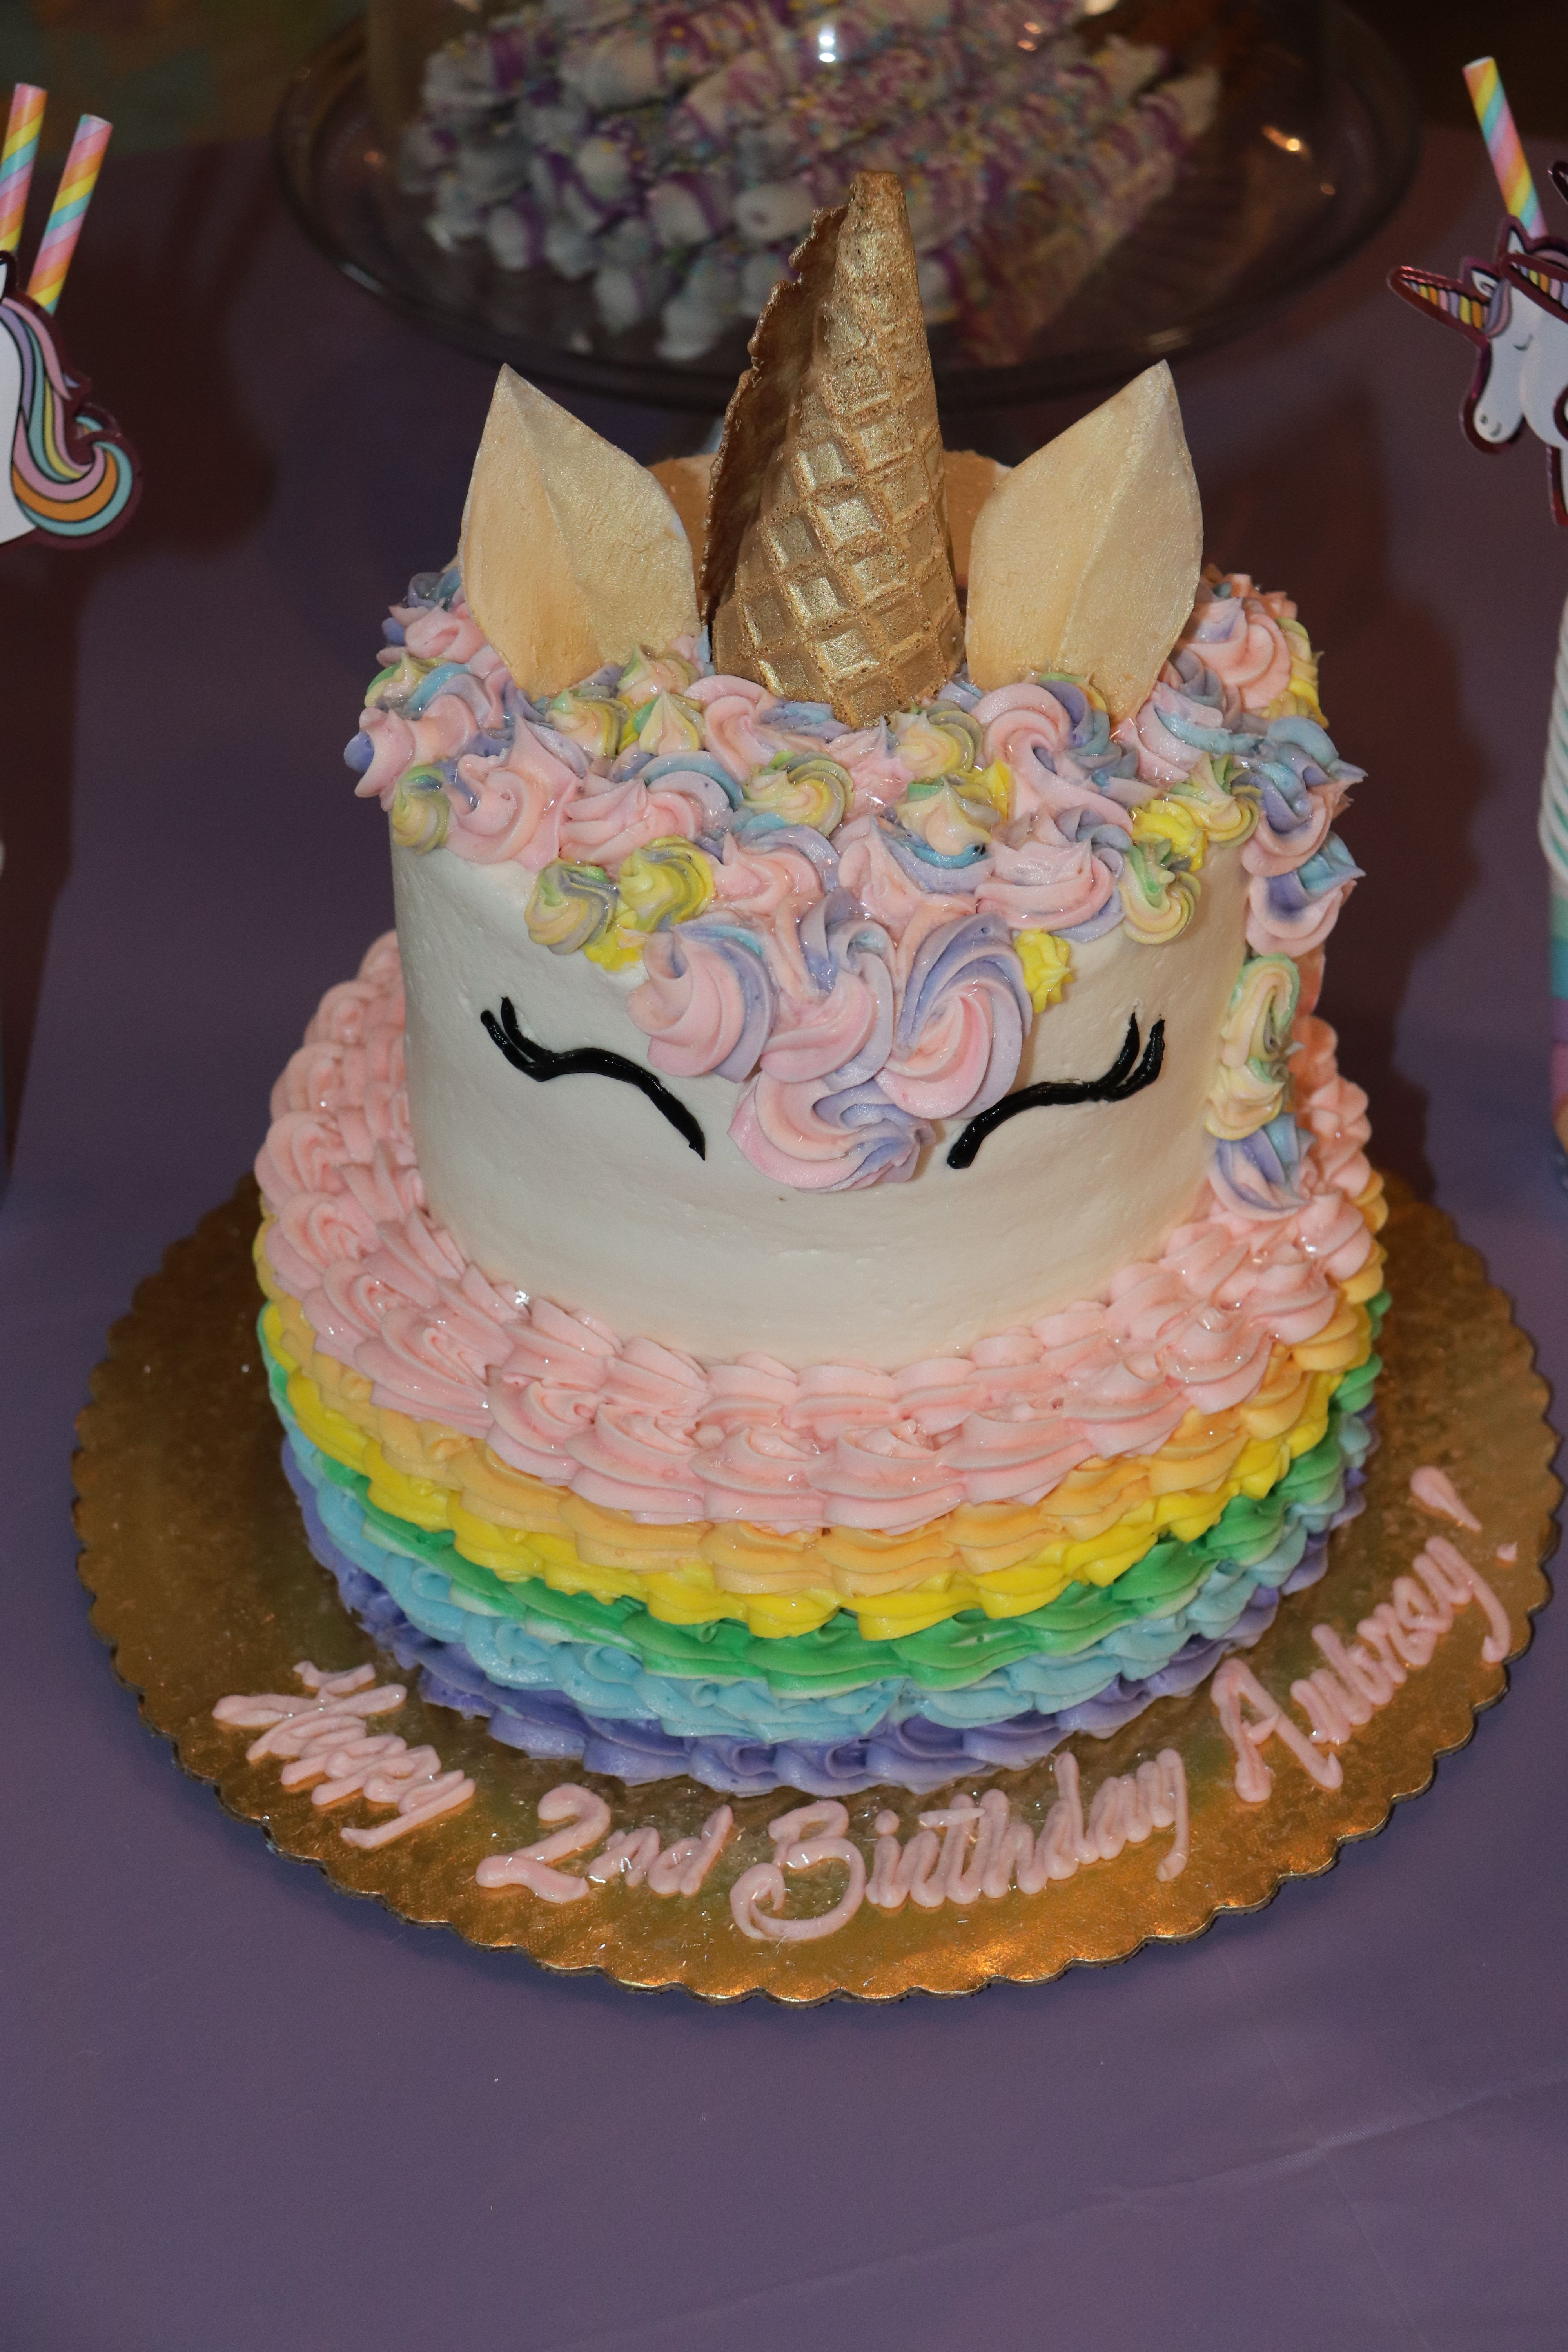 Awe Inspiring Smug Unicorn Cake From Central Market In Plano Tx With Images Personalised Birthday Cards Arneslily Jamesorg